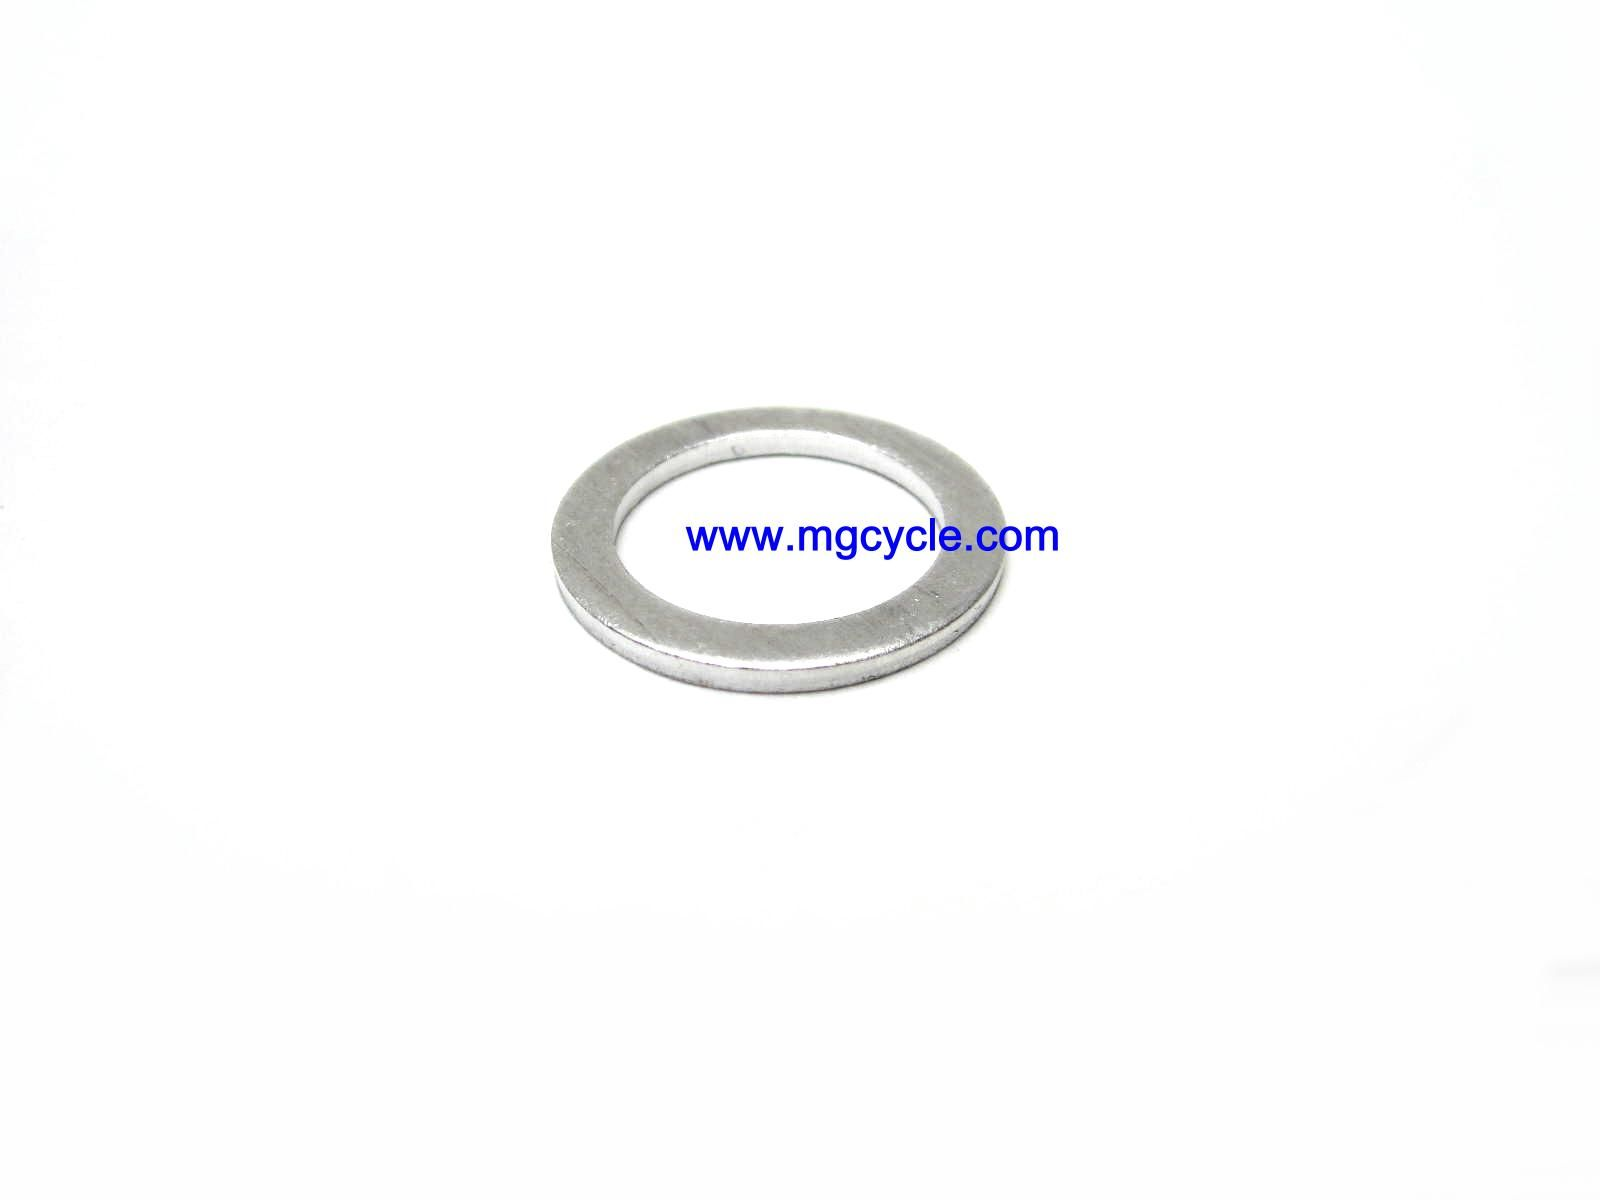 20mm aluminum sealing washer, most engine oil drain plugs